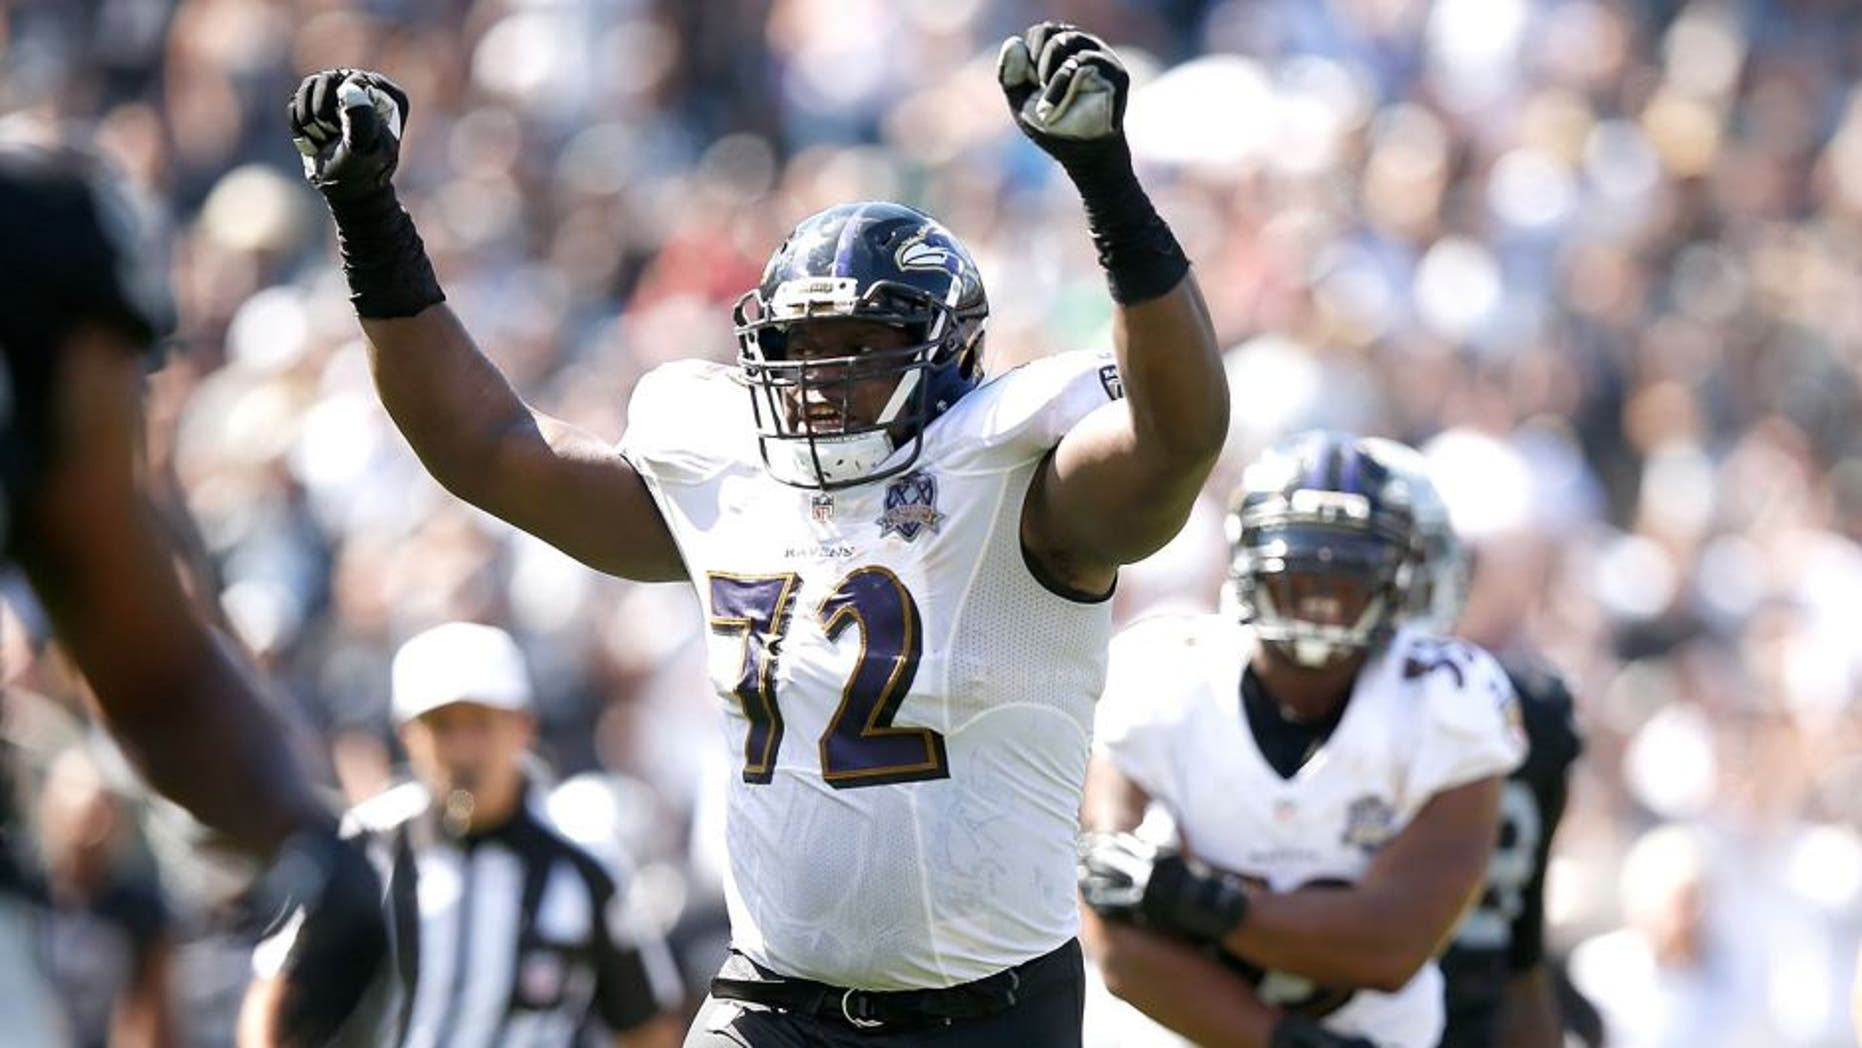 OAKLAND, CA - SEPTEMBER 20: Kelechi Osemele #72 of the Baltimore Ravens celebrates a touchdown in the second quarter against the Oakland Raiders at Oakland-Alameda County Coliseum on September 20, 2015 in Oakland, California. (Photo by Ezra Shaw/Getty Images)